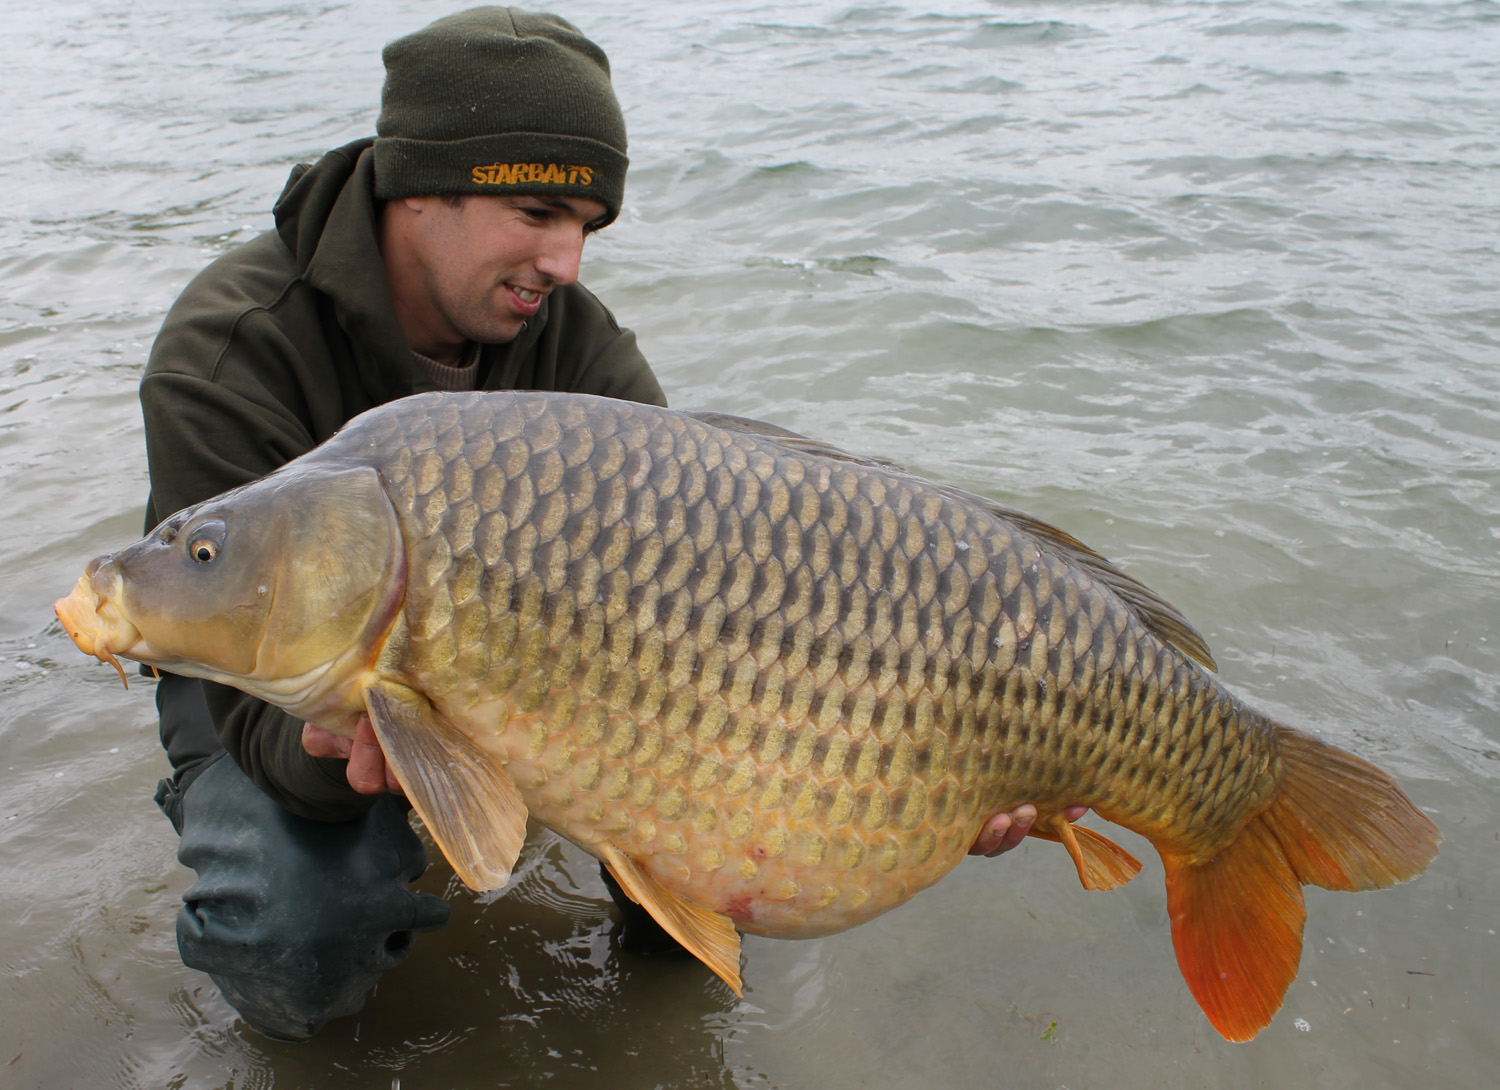 http://starbaits.com/fichiers/images/team/gallery/DUCERE_Cedric/12-DUCERE-CEDRIC.JPG